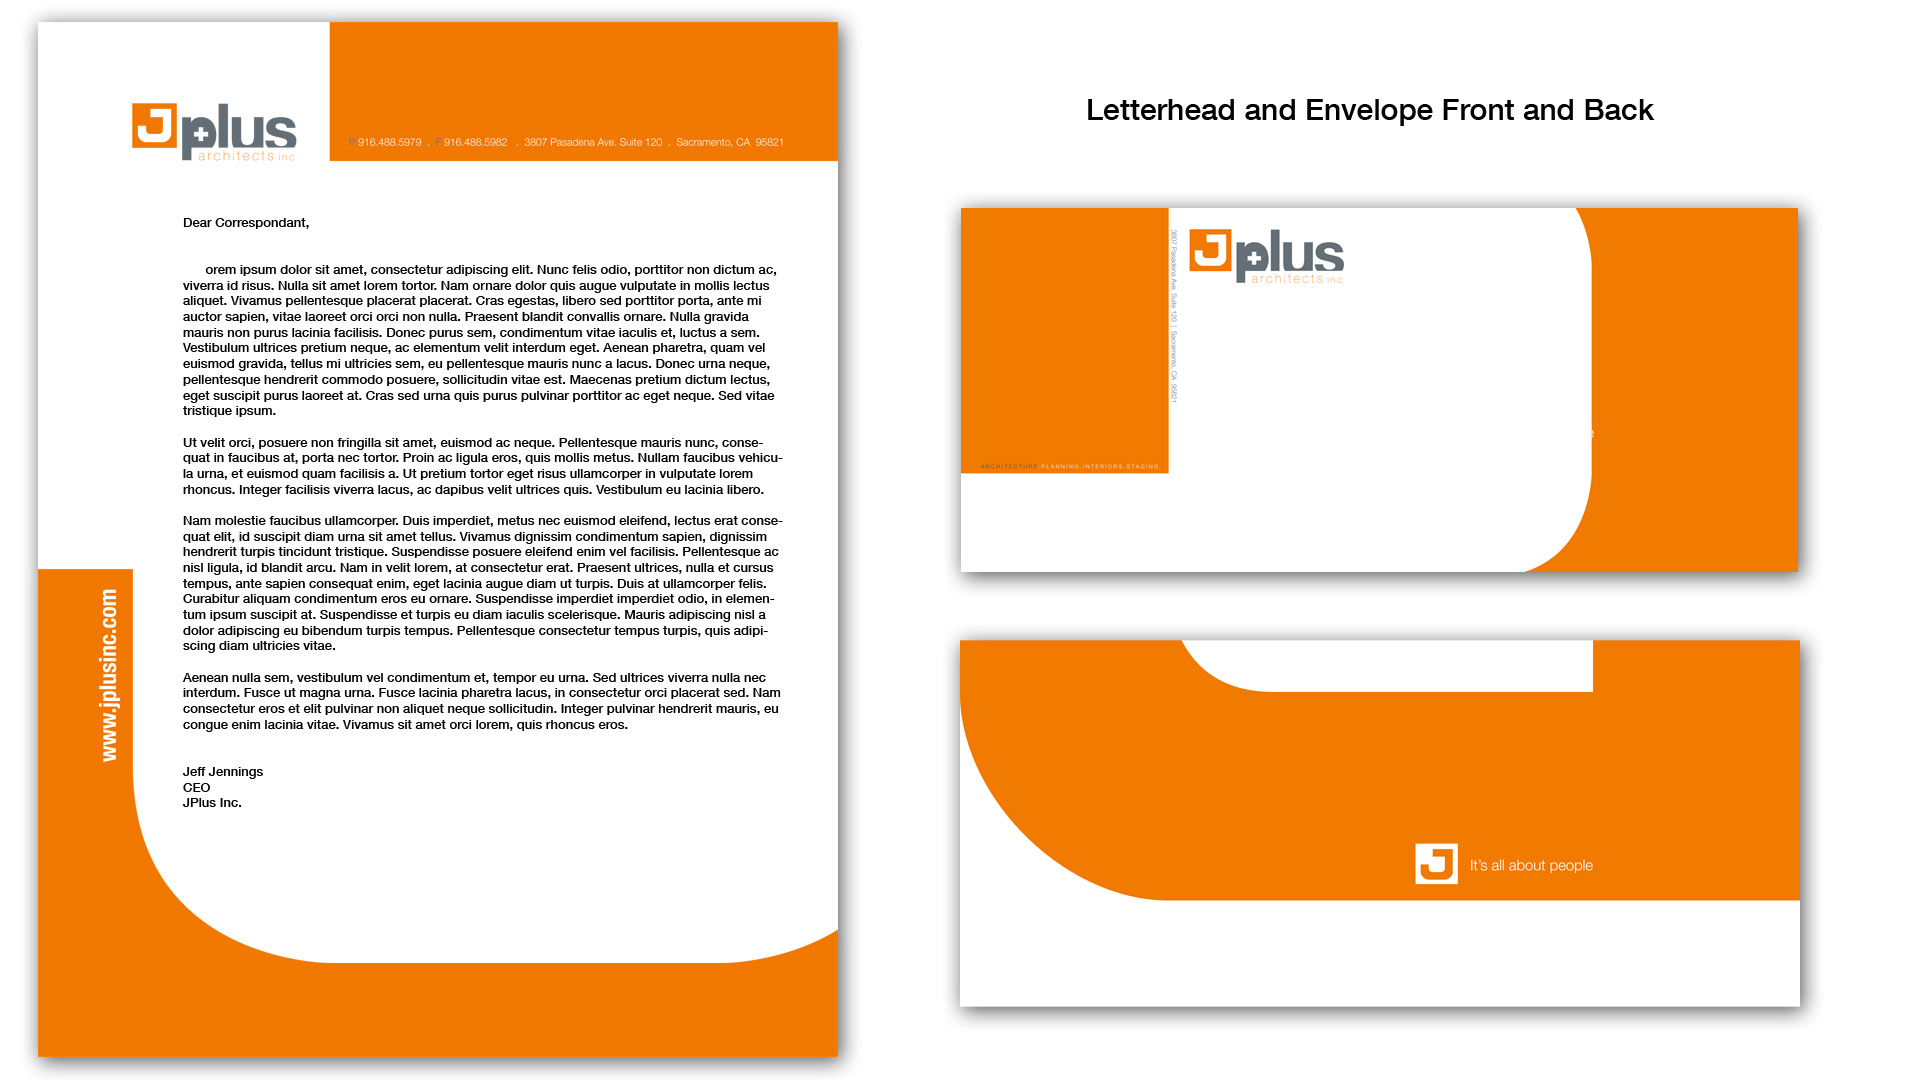 The Final letterhead that was chosen was both consistent with the business card and it was nice how the di-cut envelop was a J that wrapped around the envelop.  When you opened the envelop, you could see the J as it unfolded.